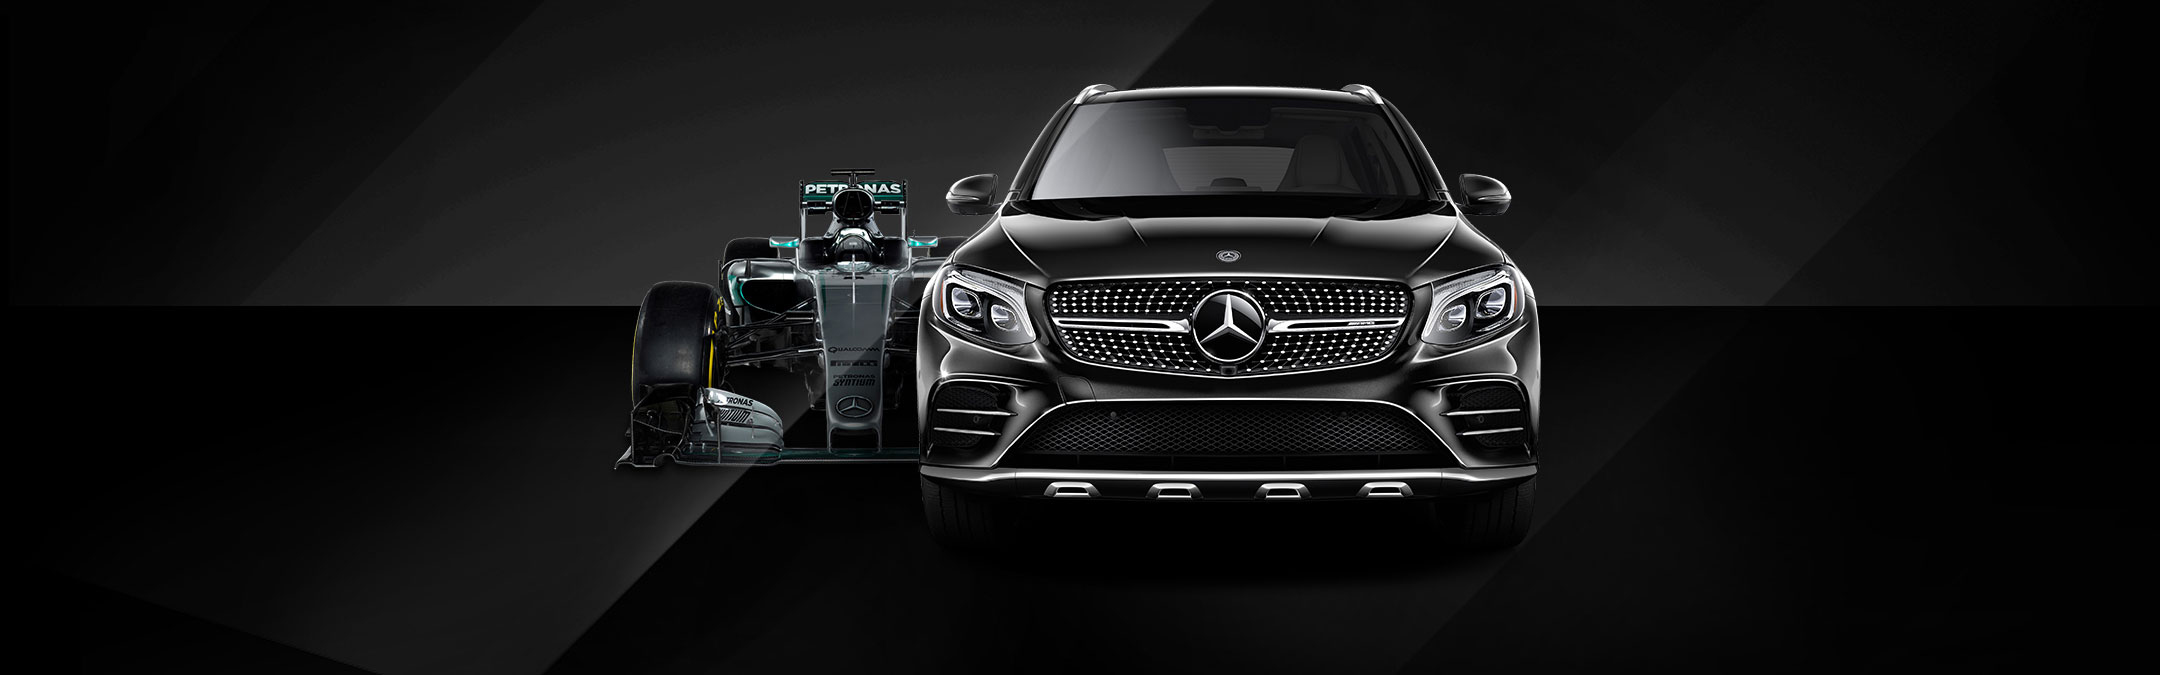 Performances du Mercedes-AMG GLC 2018